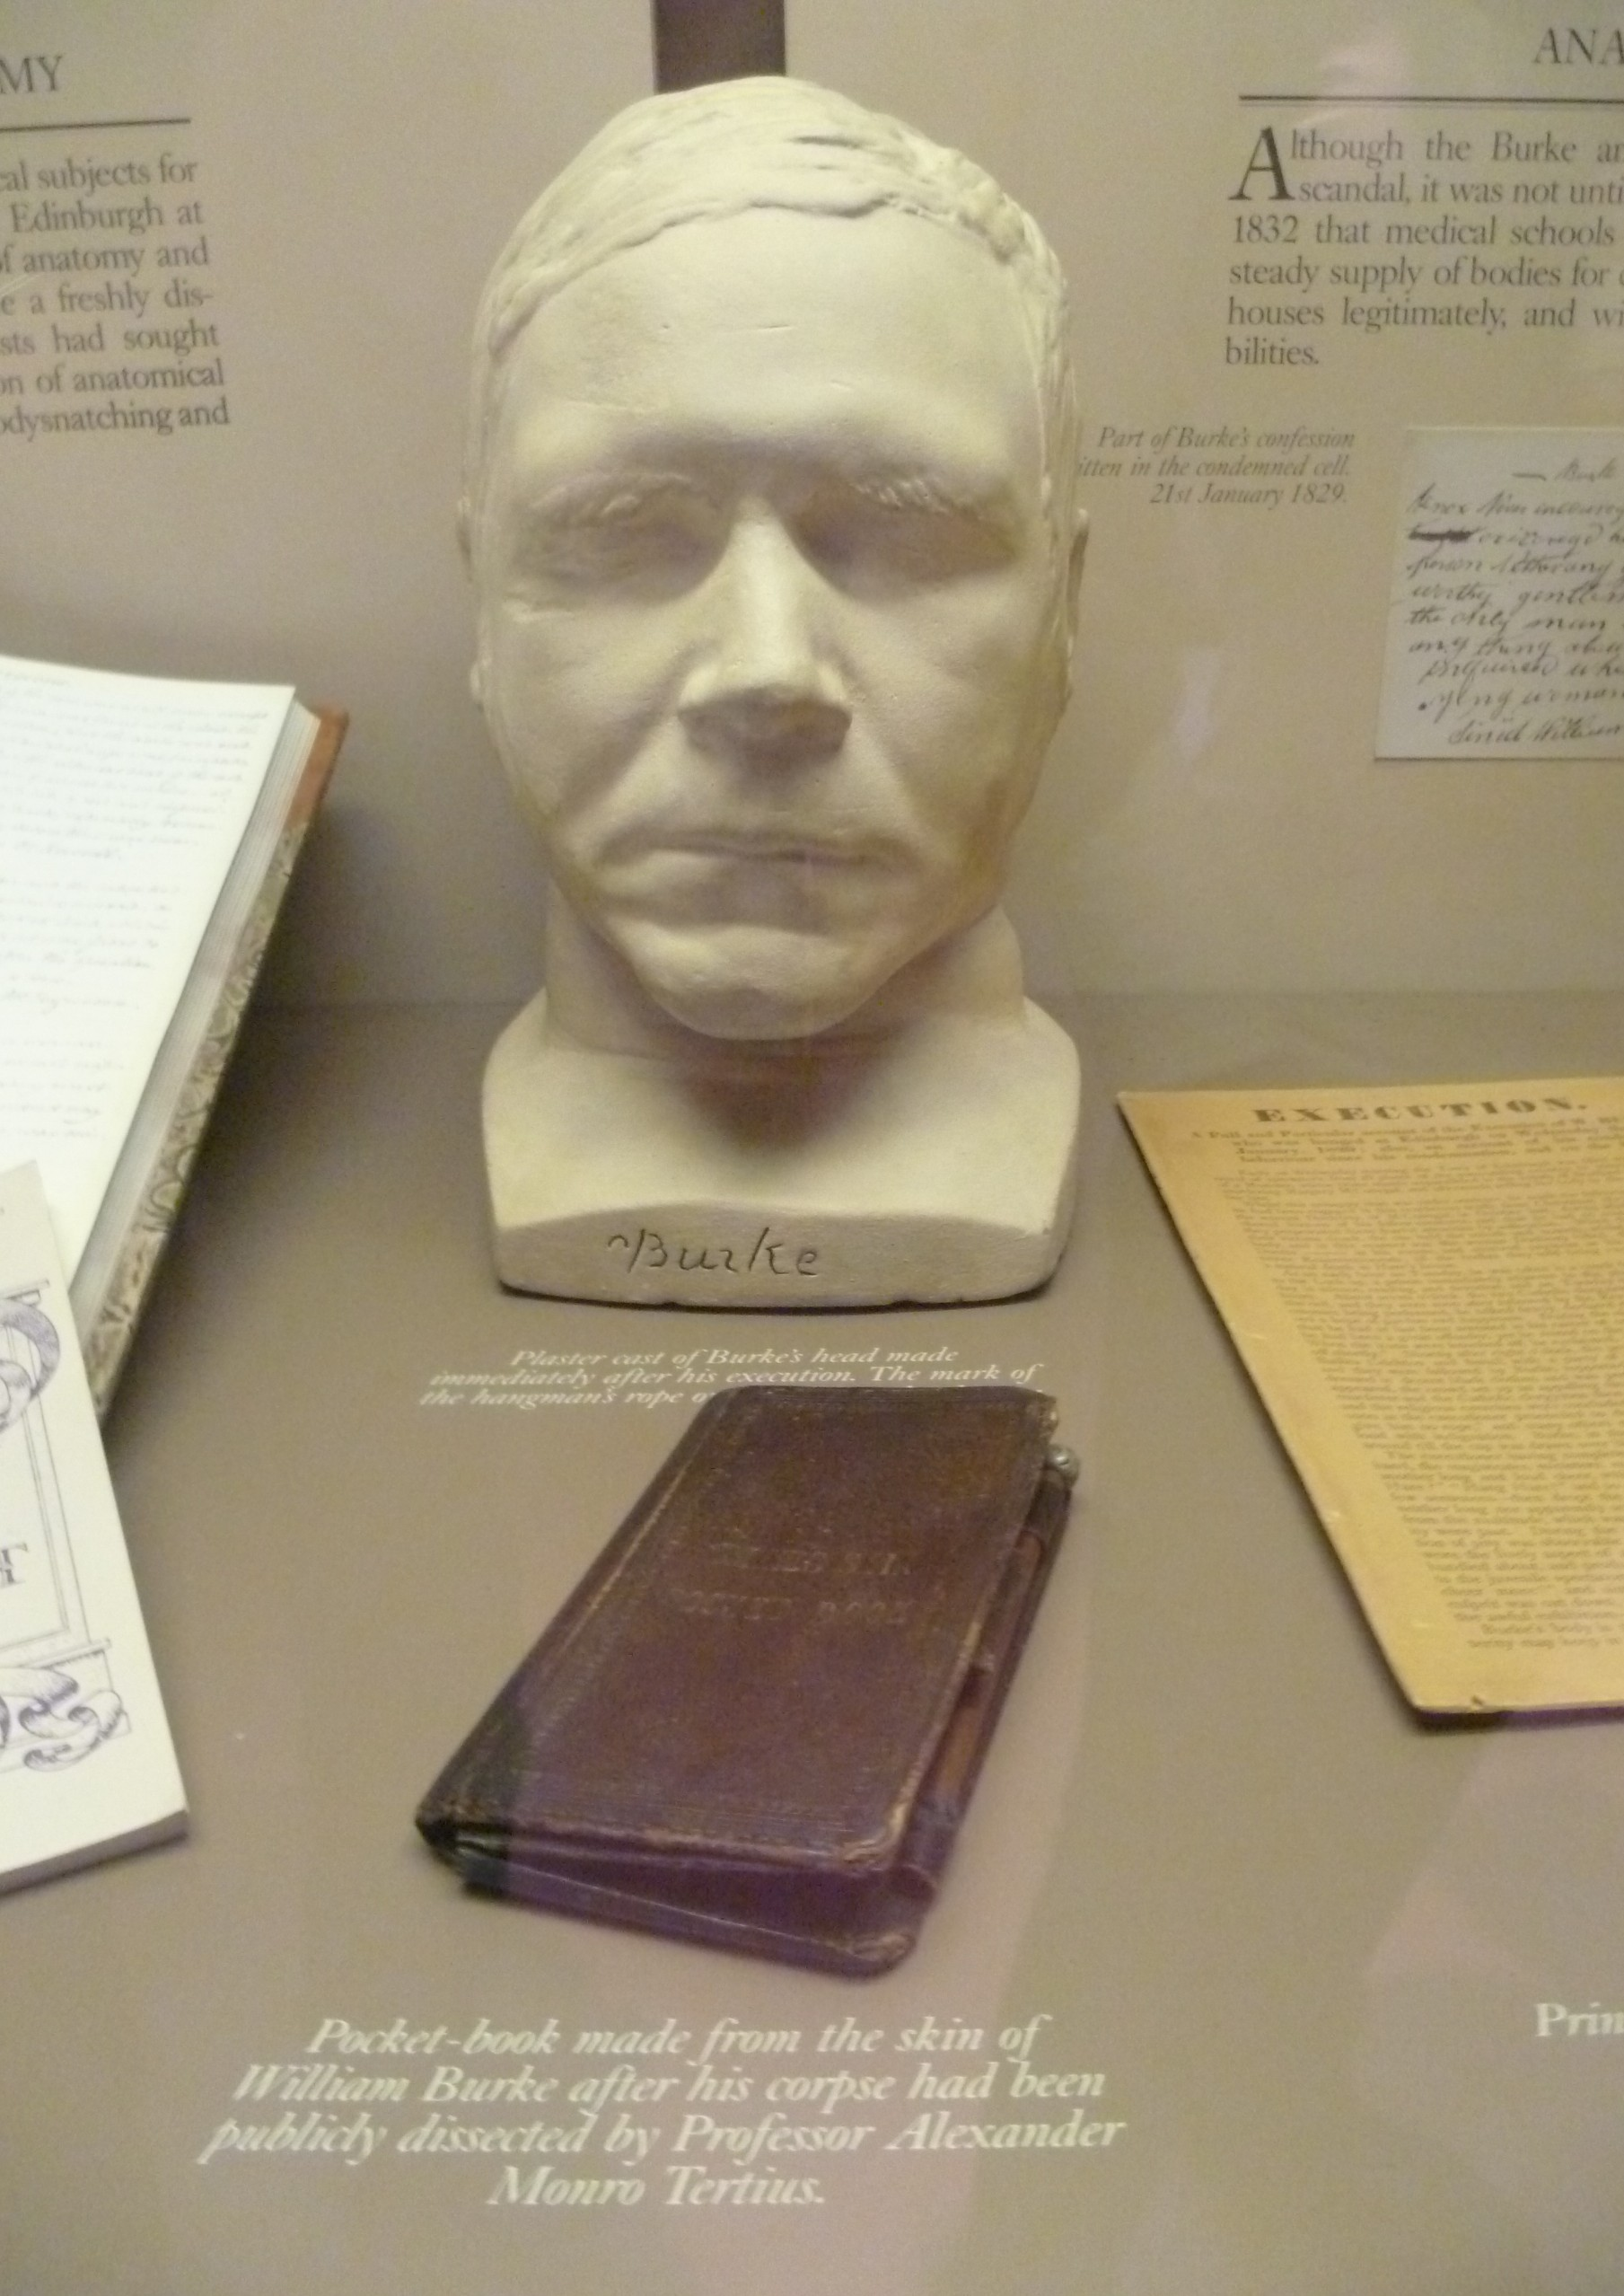 William Burke's death mask and pocket book, Surgeons' Hall Museum, Edinburgh.